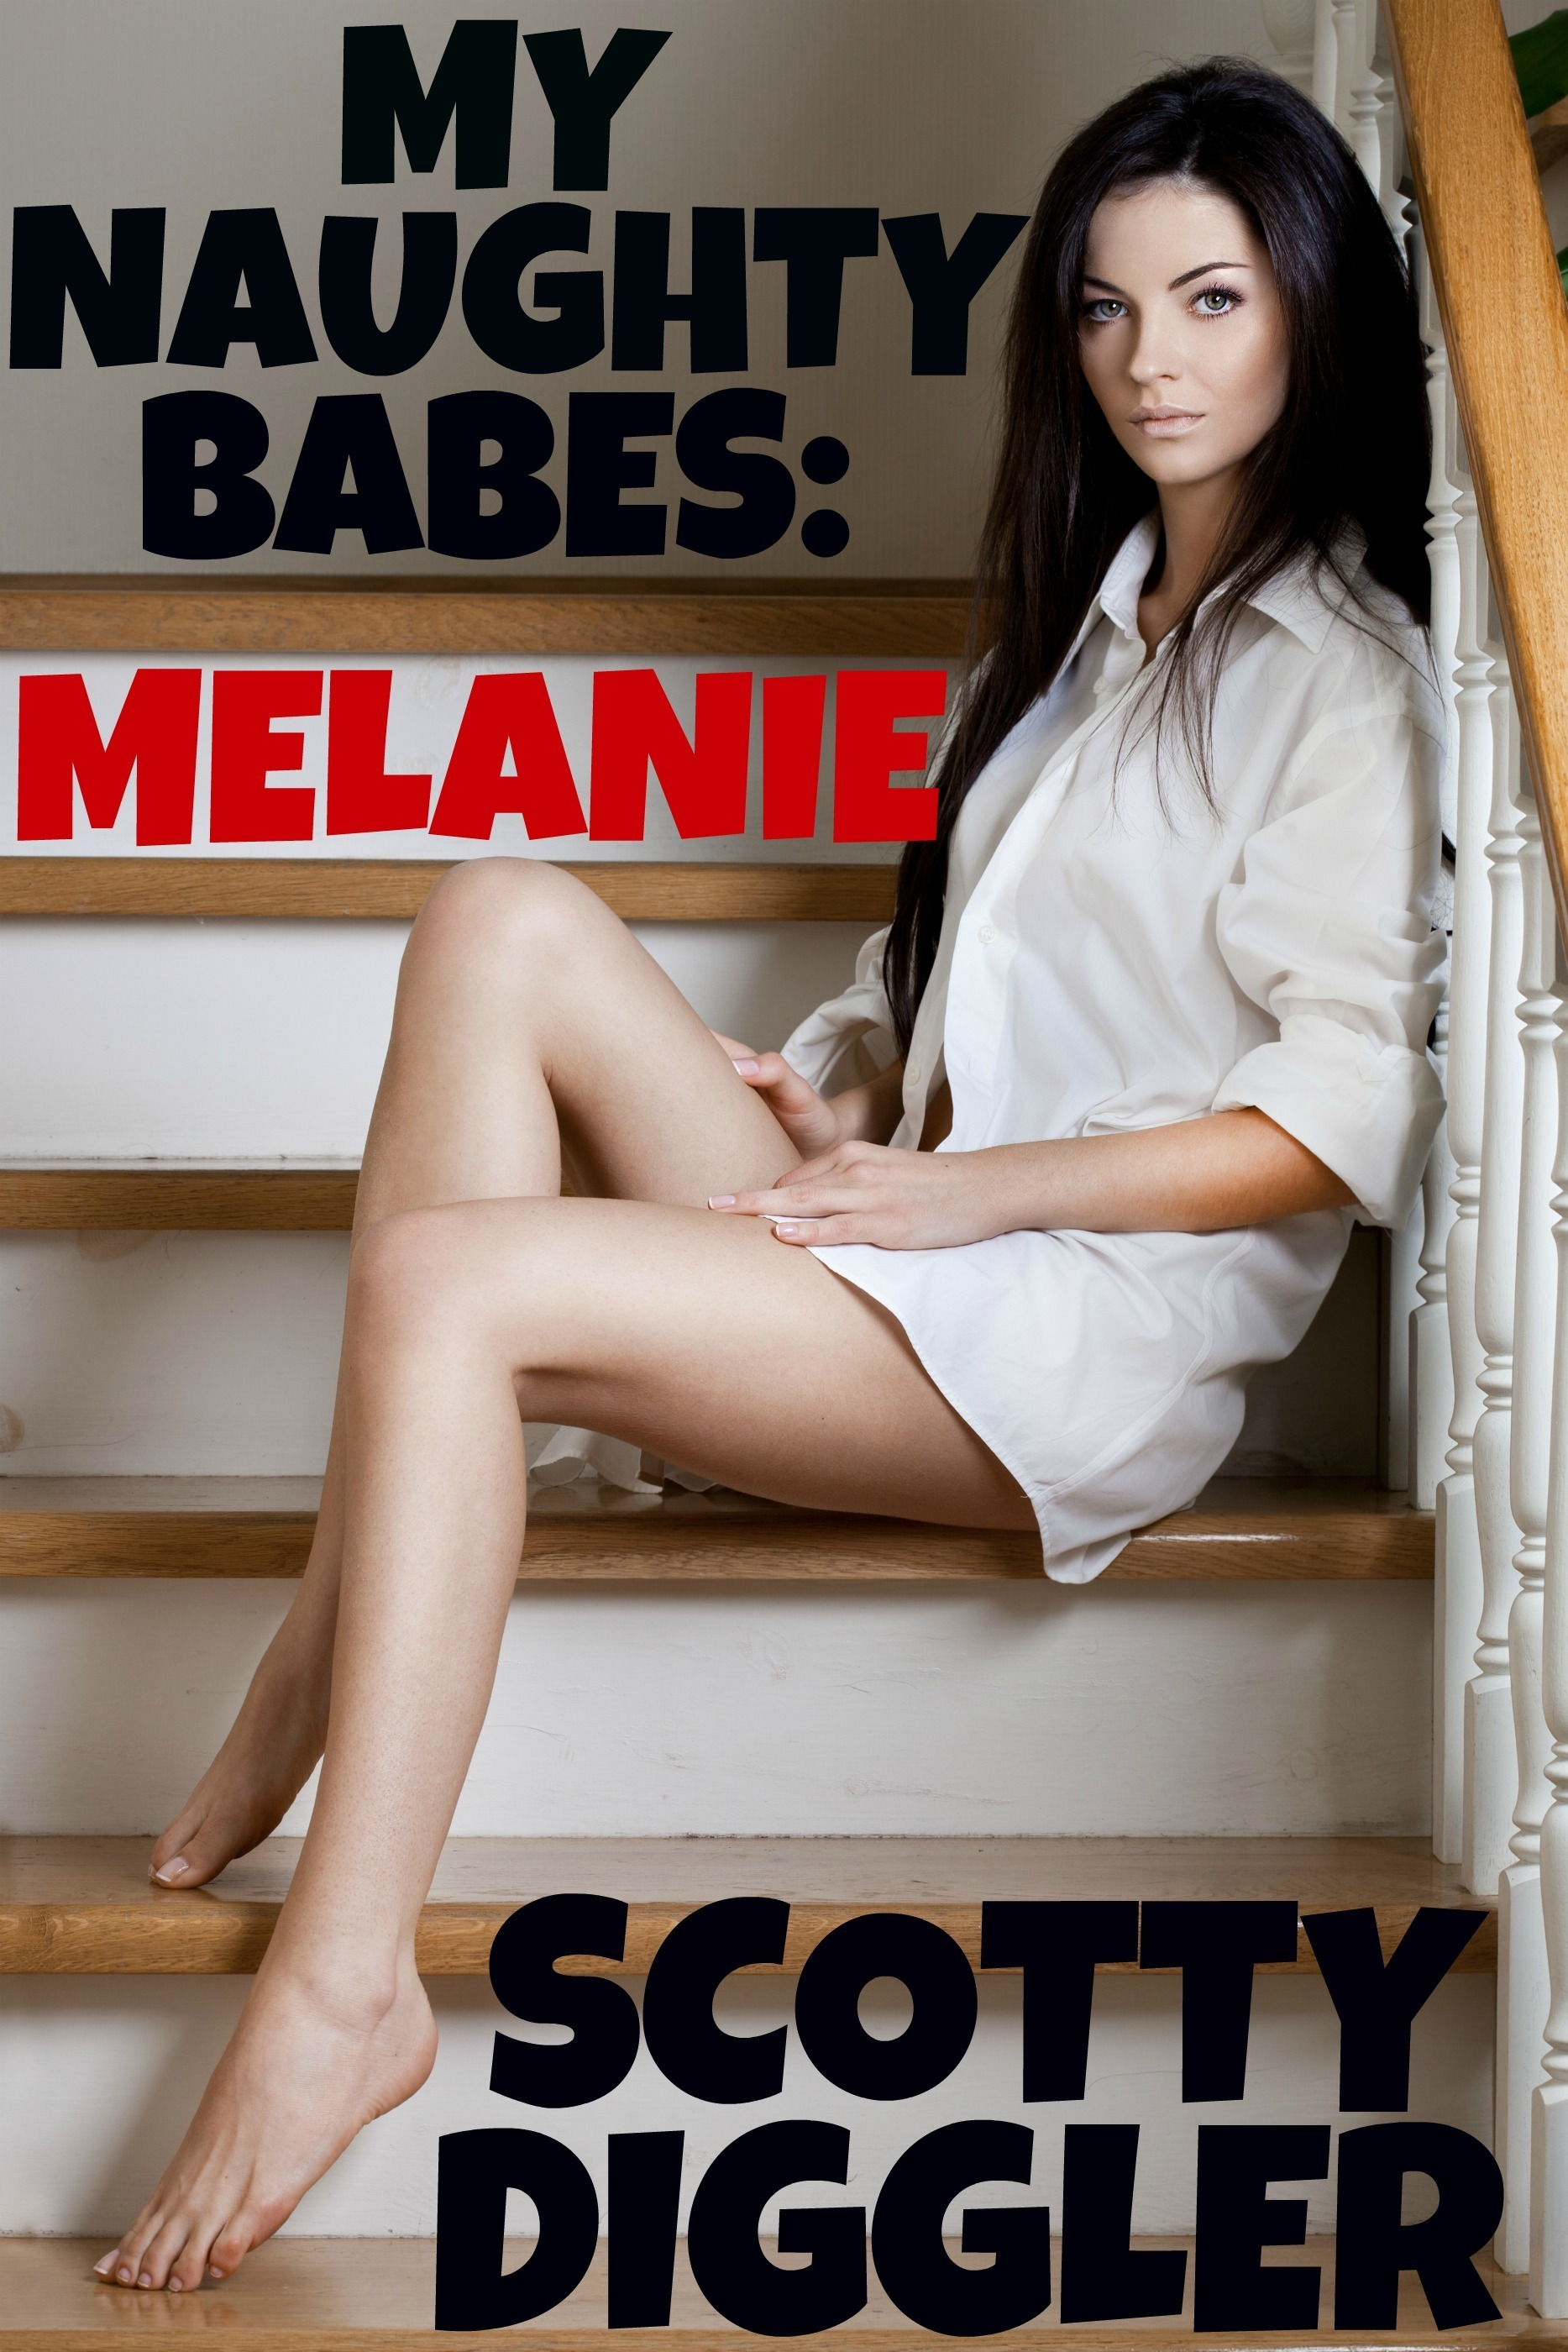 My Naughty Babes: Melanie  by  Scotty Diggler